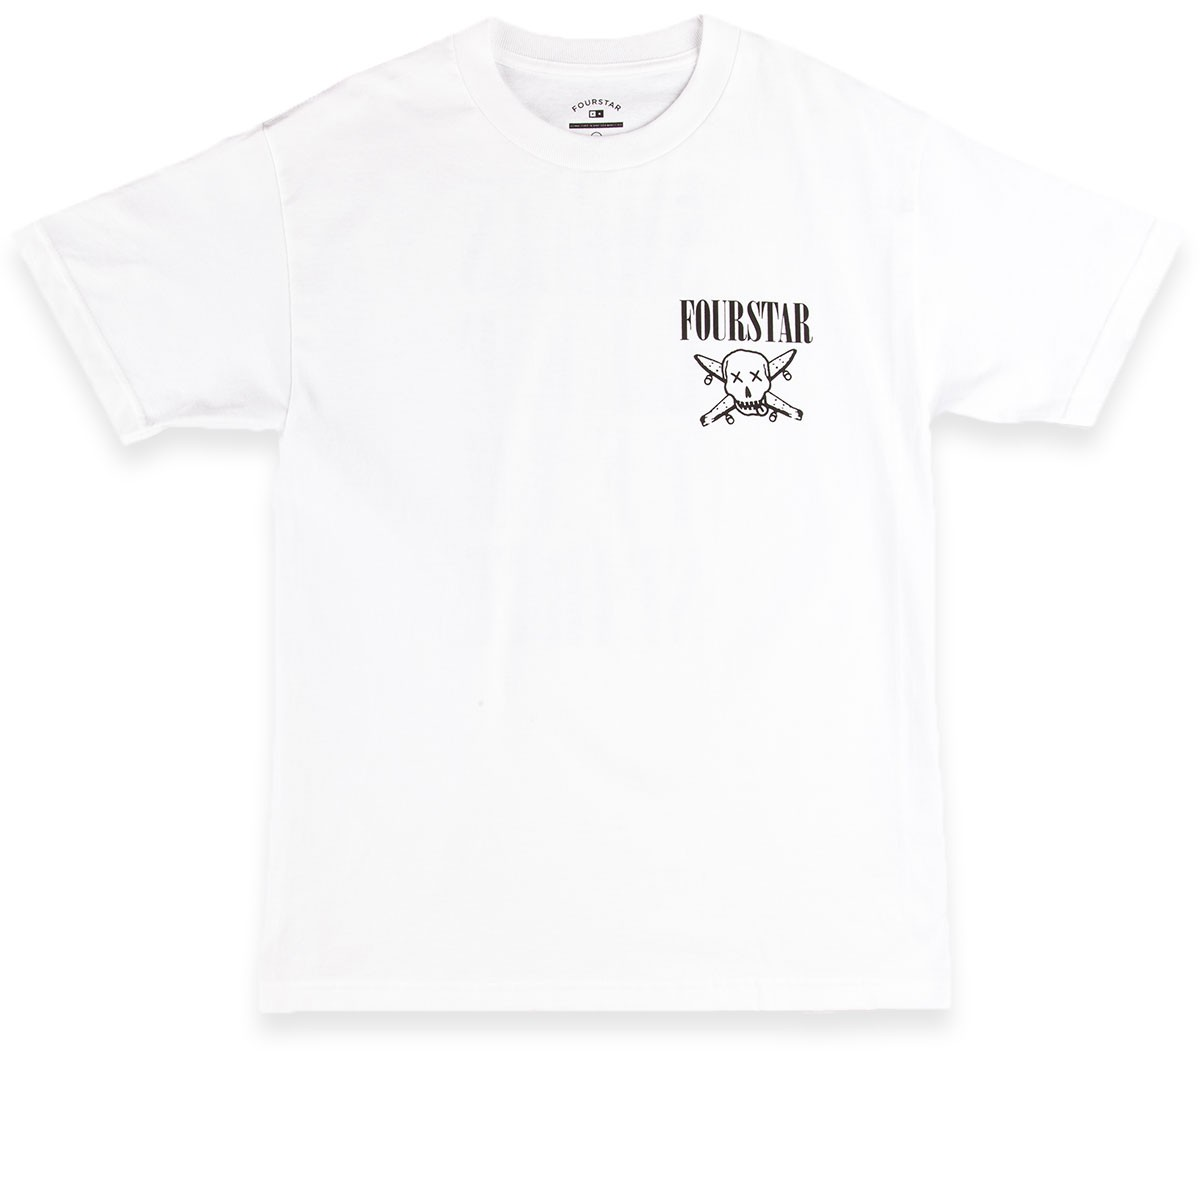 Fourstar Team Spirit T-Shirt - White